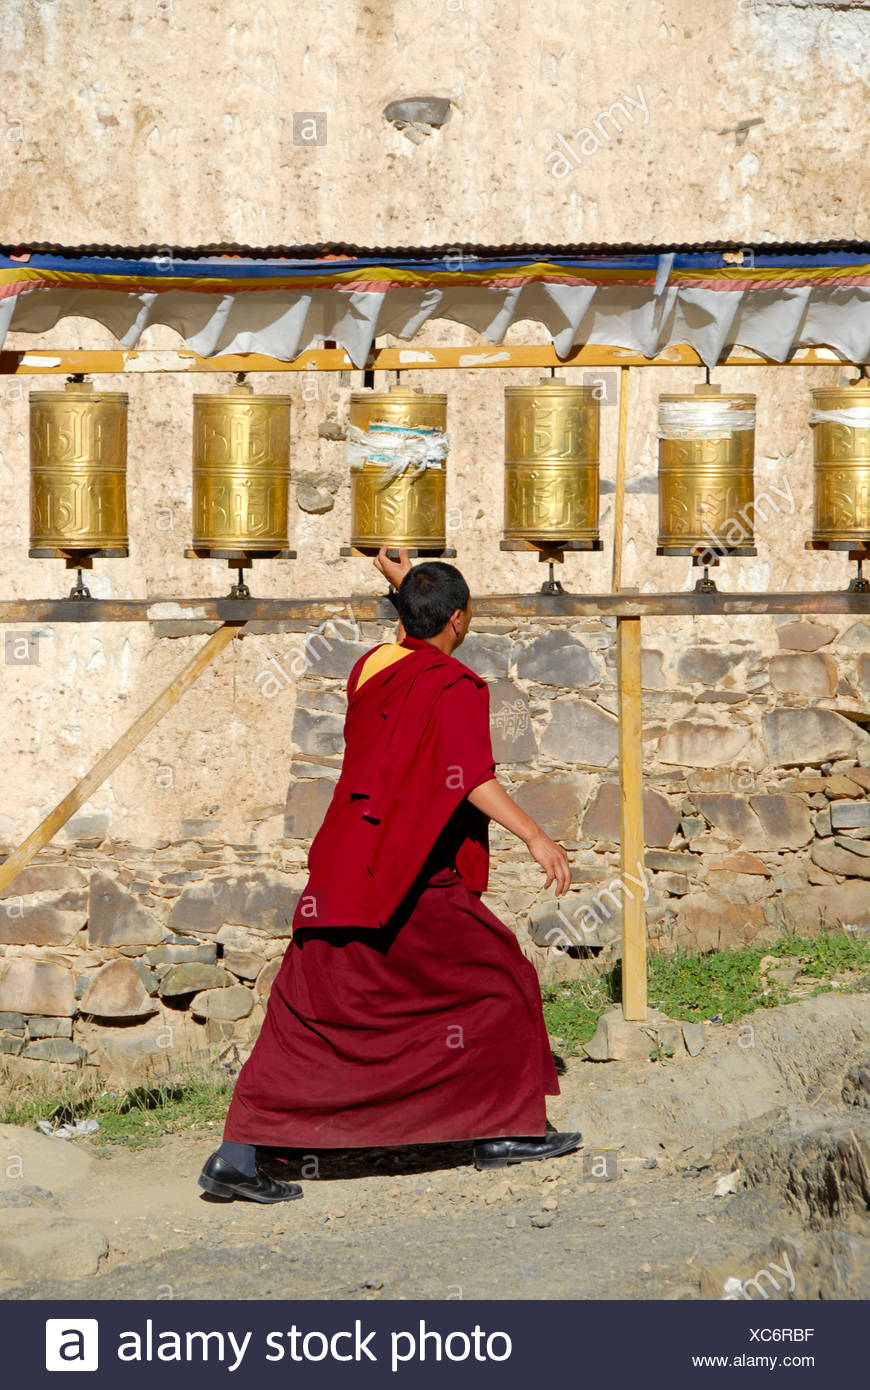 white mills buddhist single women Women in buddhism is a topic that can be approached from varied perspectives including those of theology, history, anthropology and feminism topical interests include the theological status of women, the treatment of women in buddhist societies at home and in public, the history of women in buddhism, and a comparison of the experiences of women.